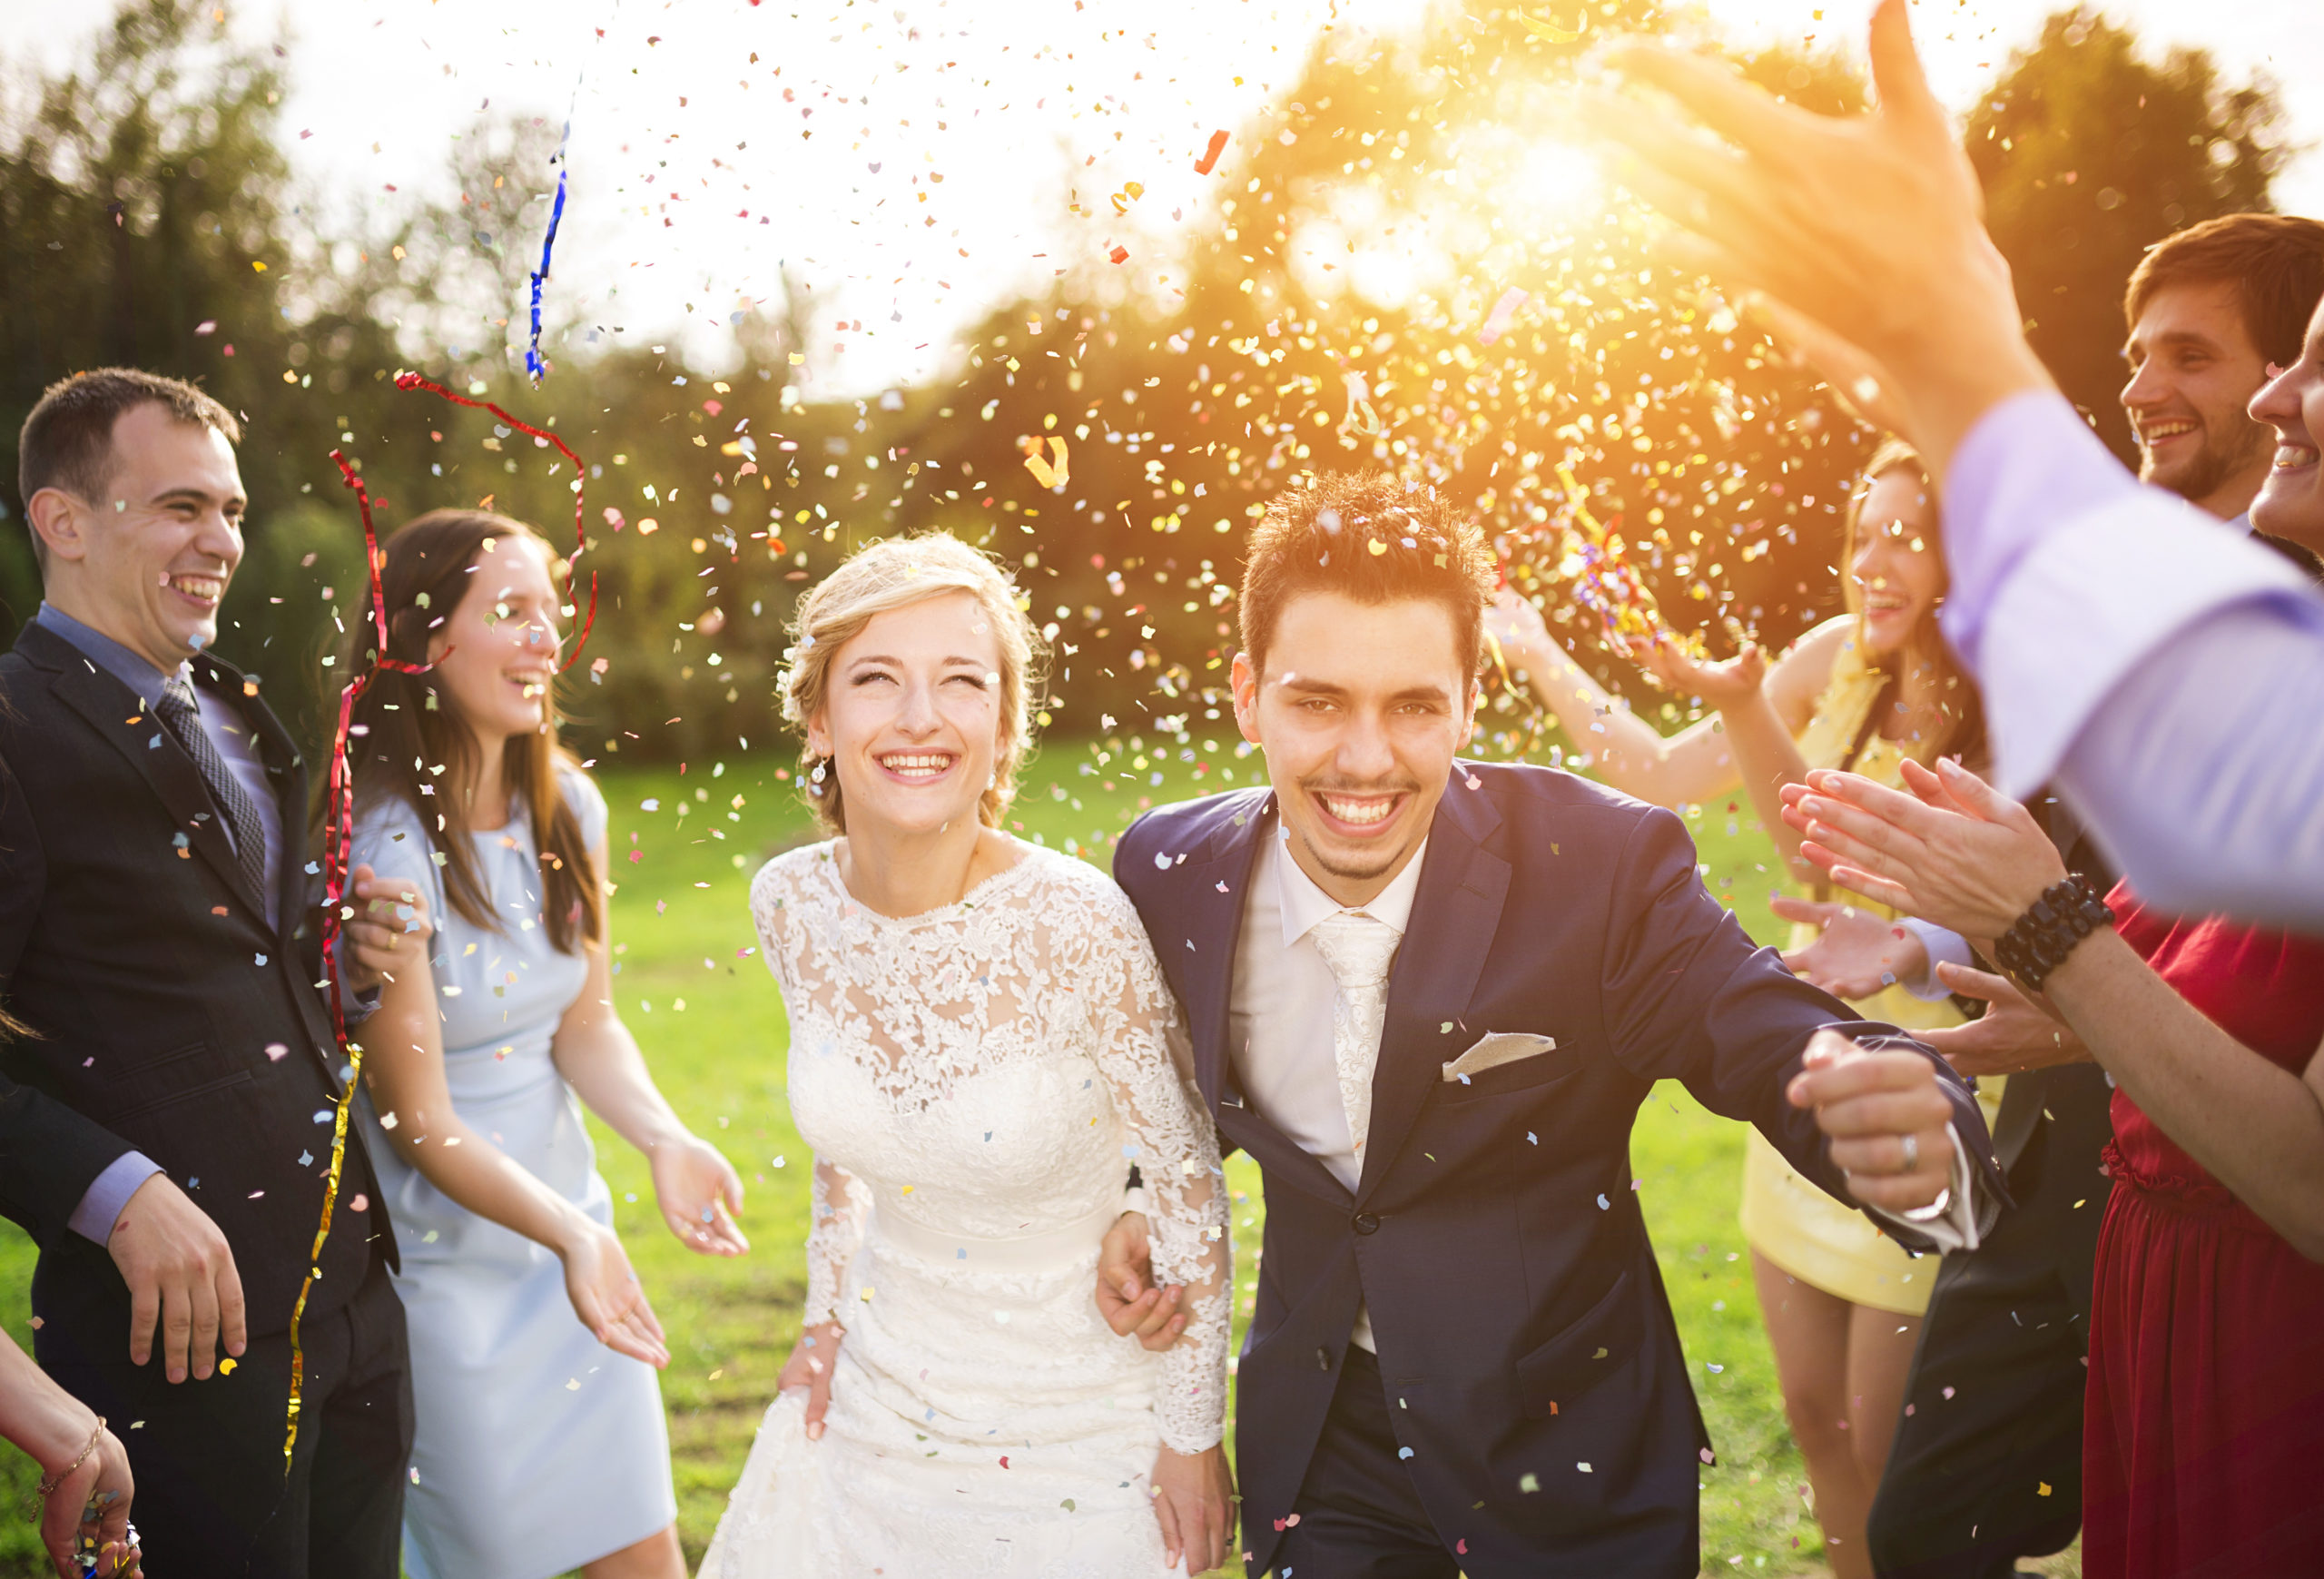 What to Ask When Searching for a Wedding Venue